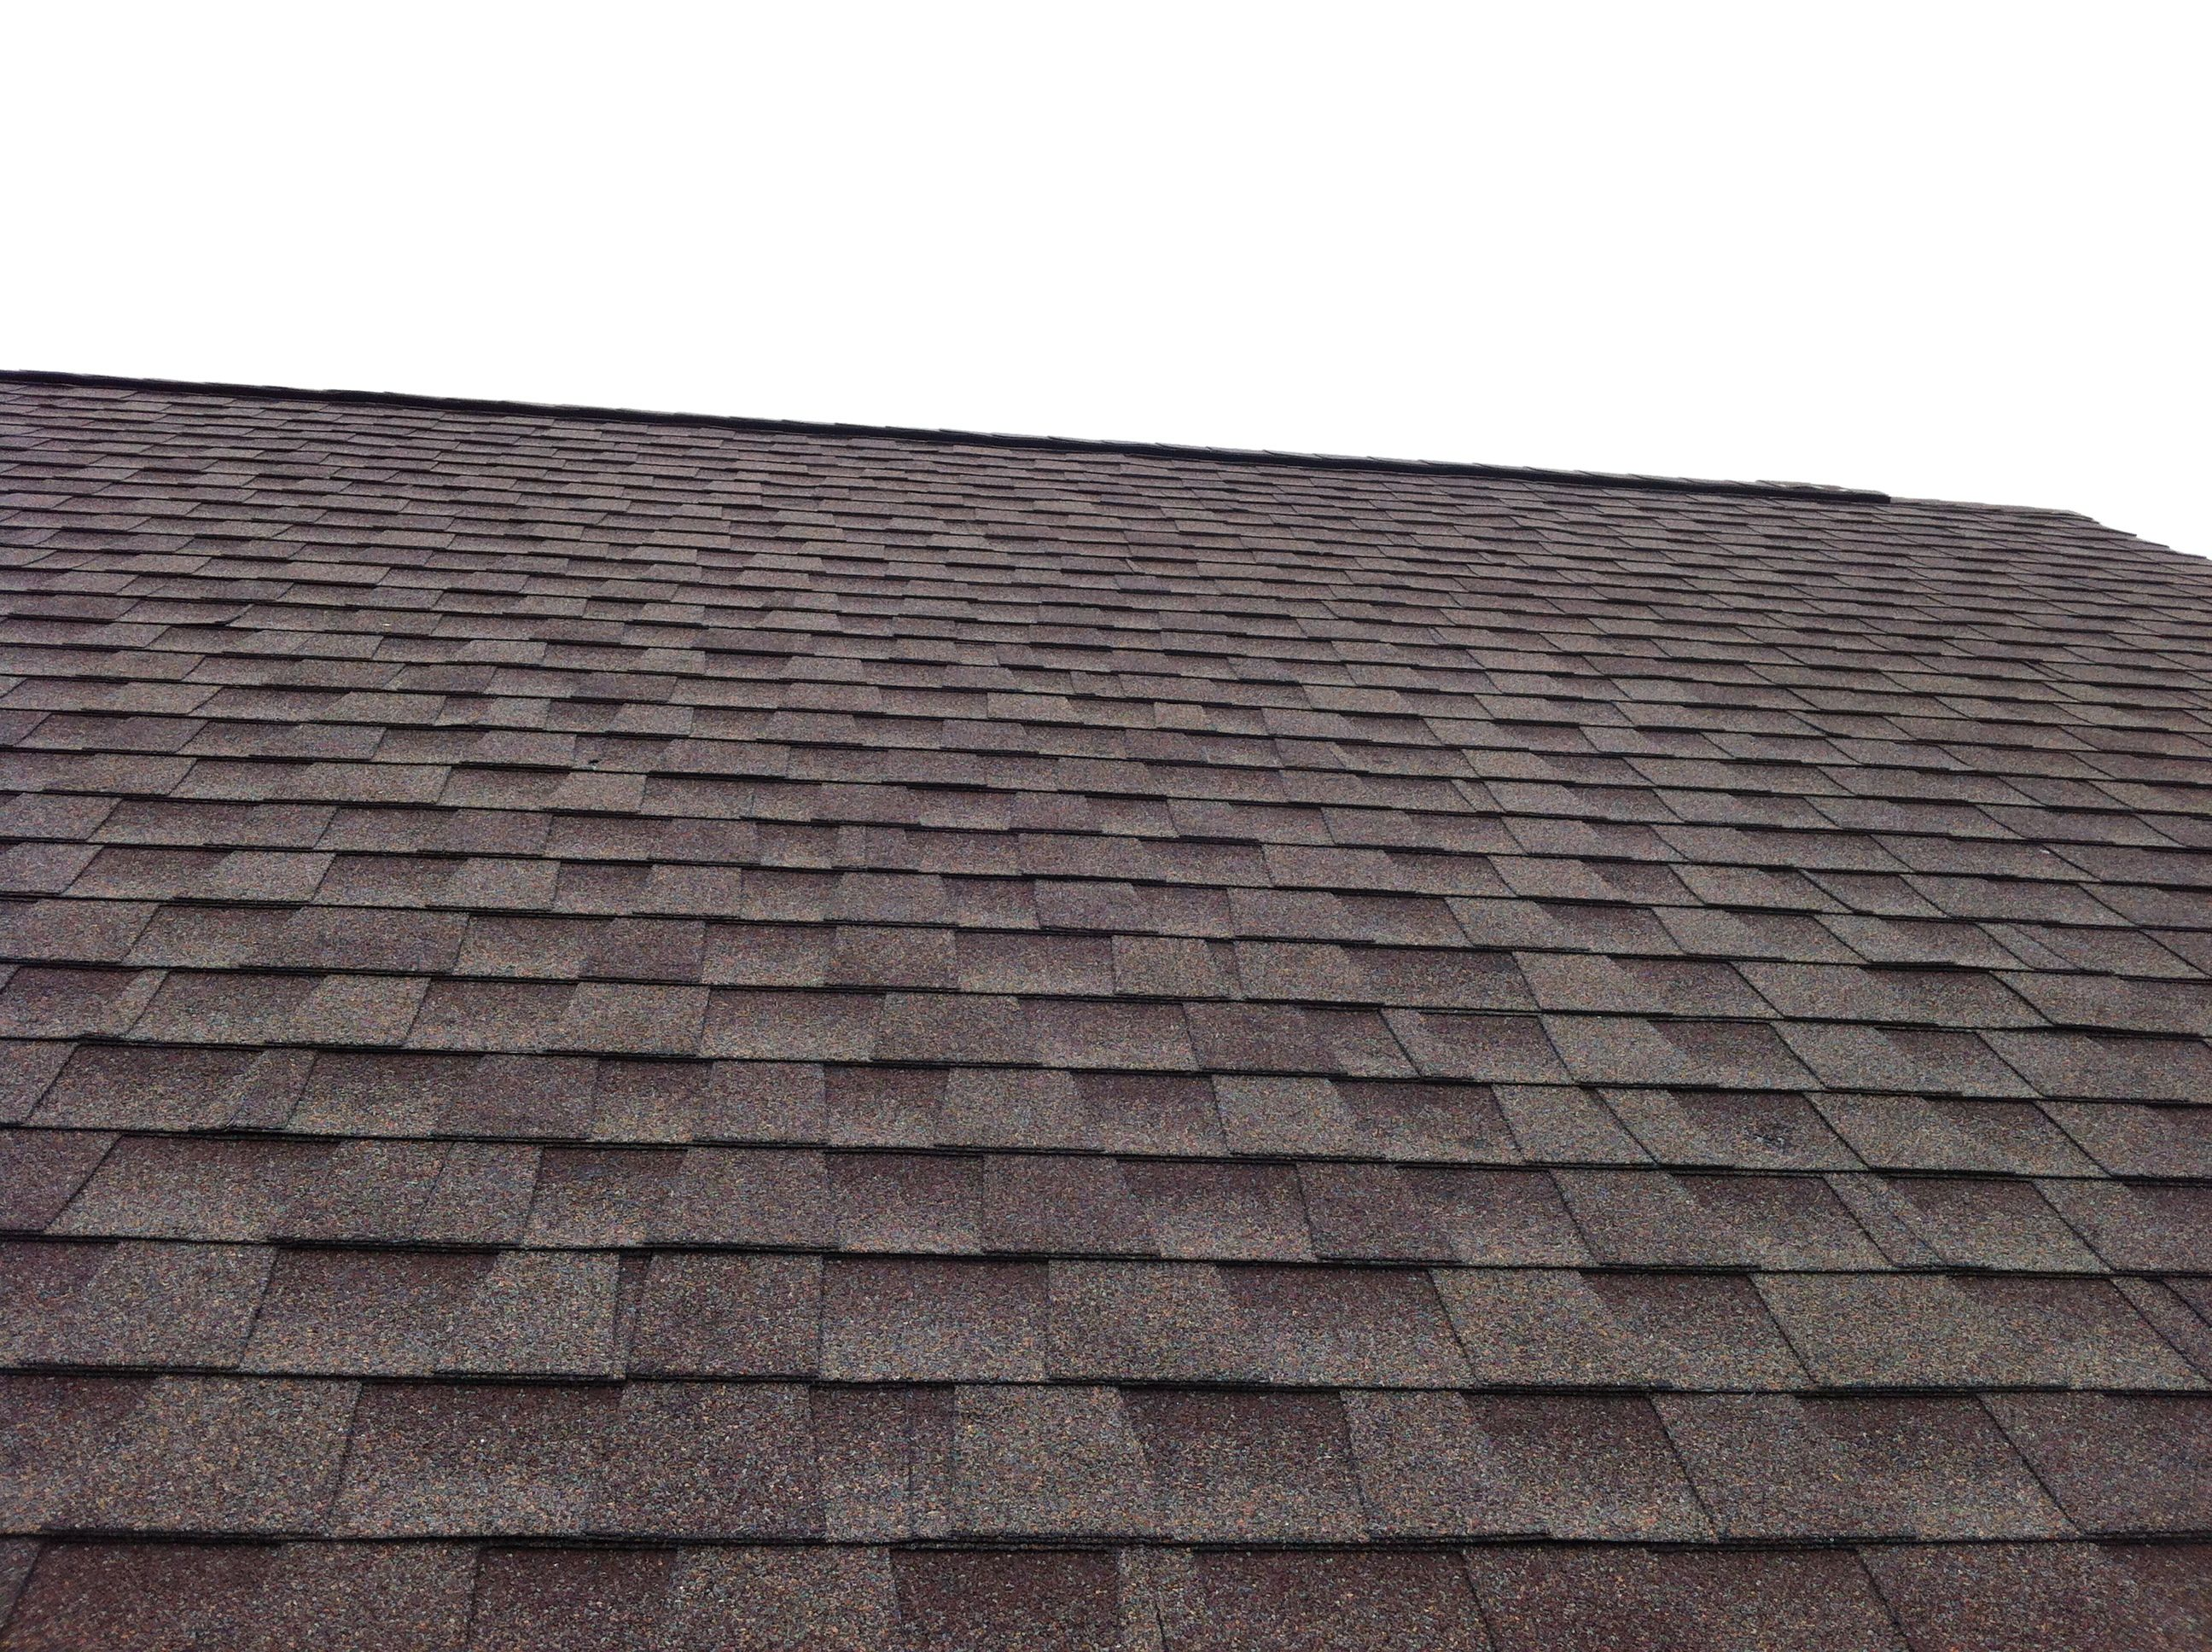 Best Roof Shingles Shingling Roof Shingles Roofing 400 x 300